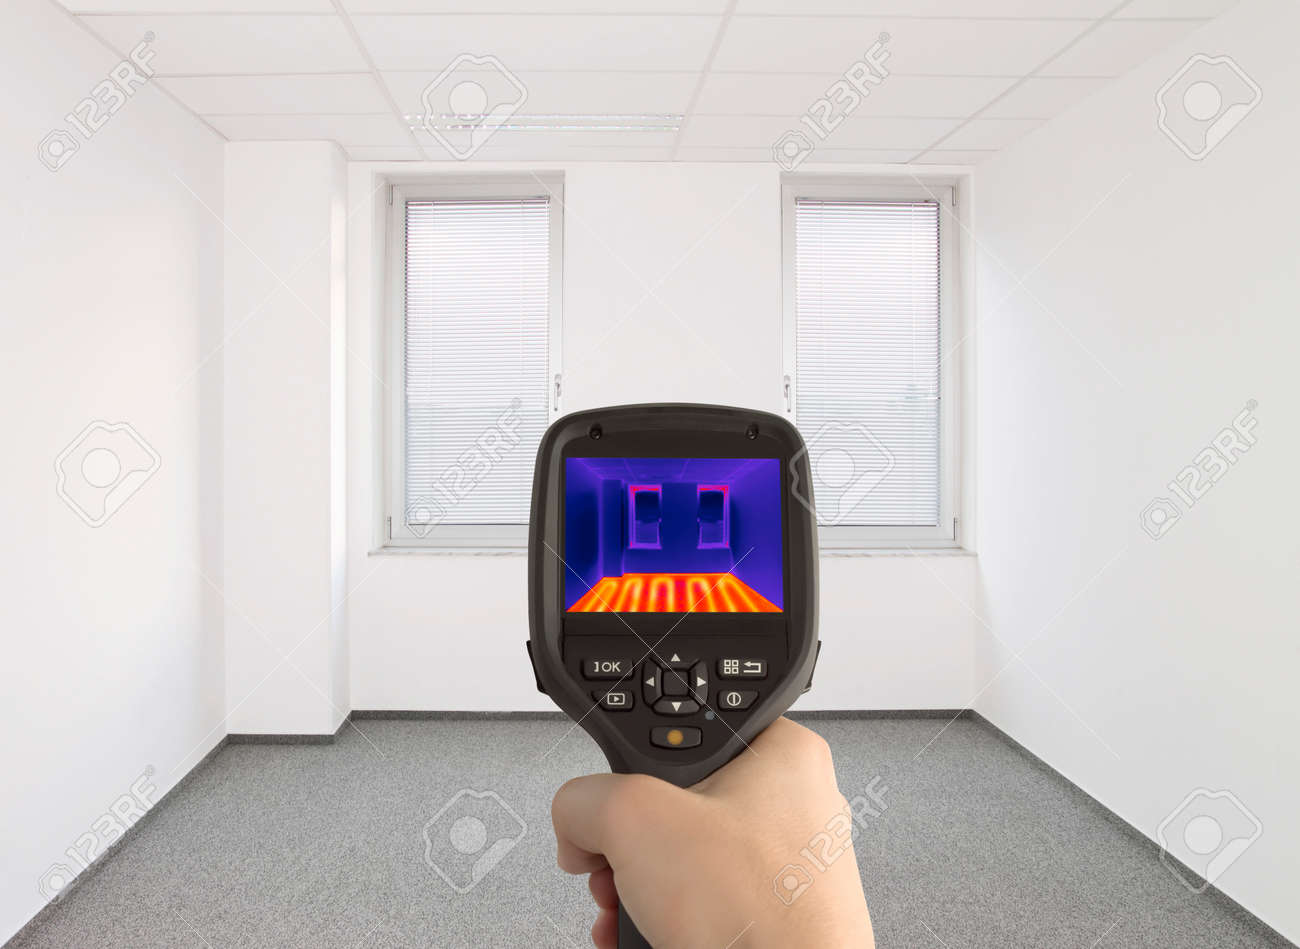 Controlling Underfloor Heating with Thermal Camera Standard-Bild - 30691827